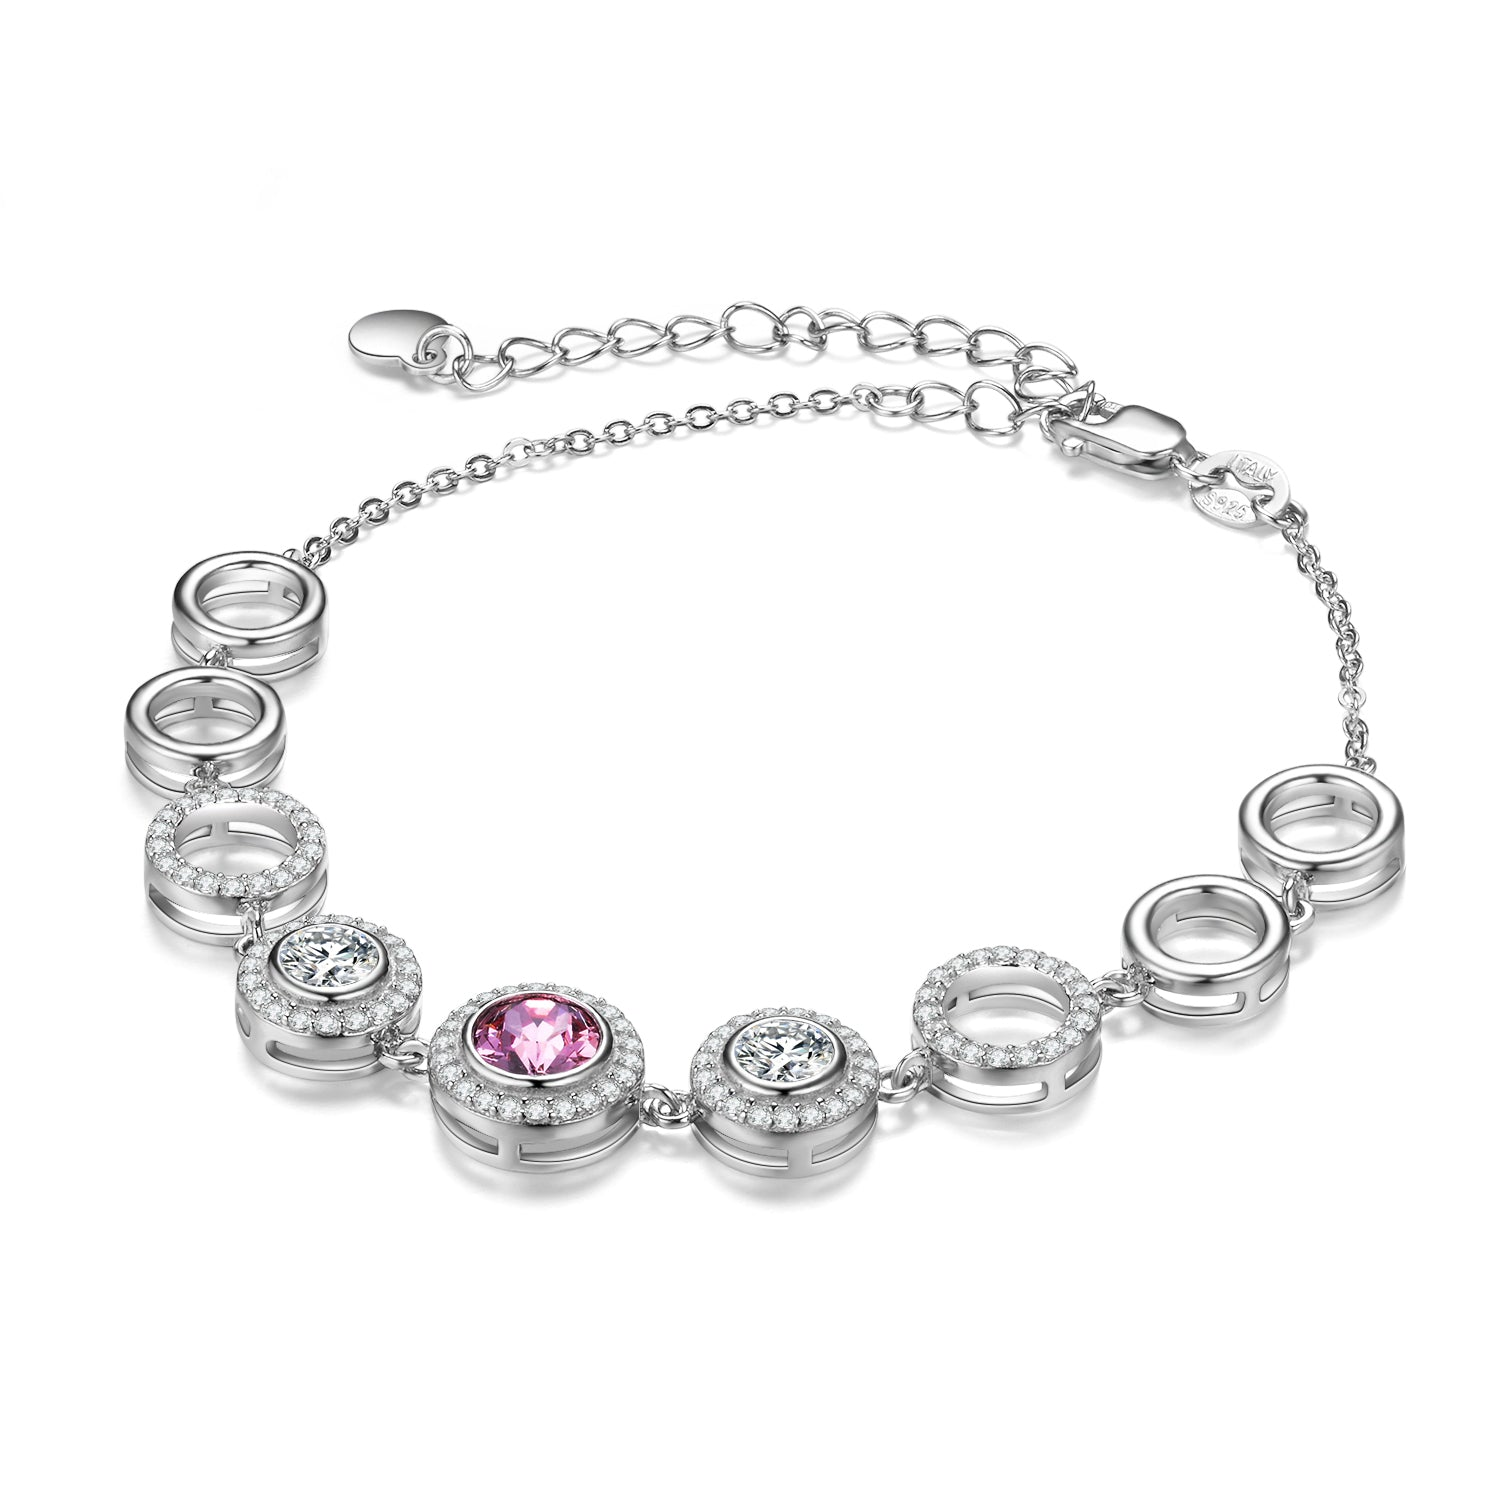 Simple Bracelet Designs For Women Gemstone Colorful Bracelet Silver